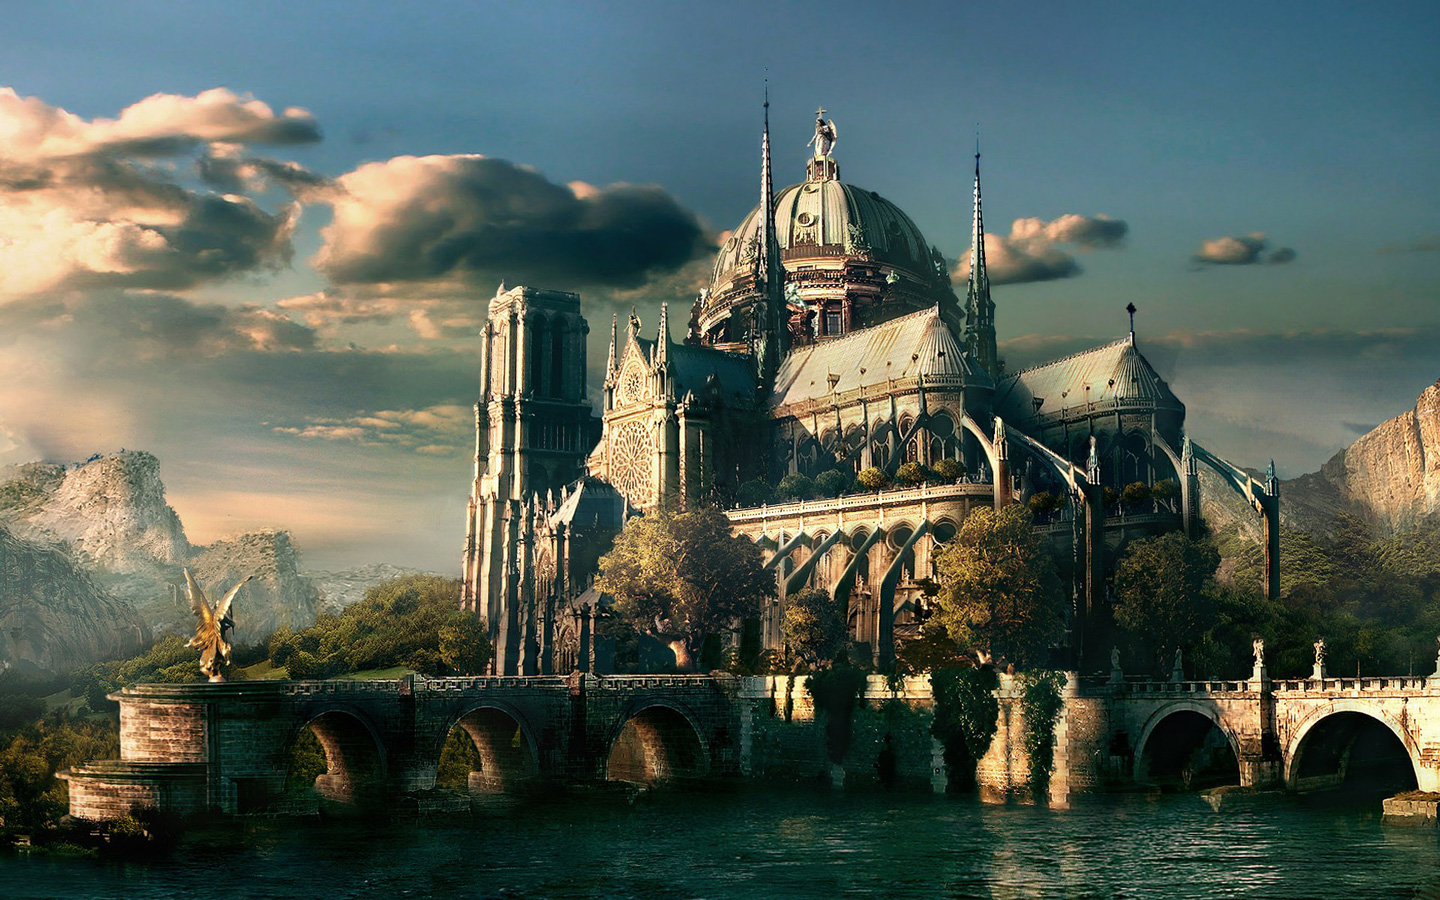 page size 1440x900 desktop wallpaper of fantasy castle 1440x900